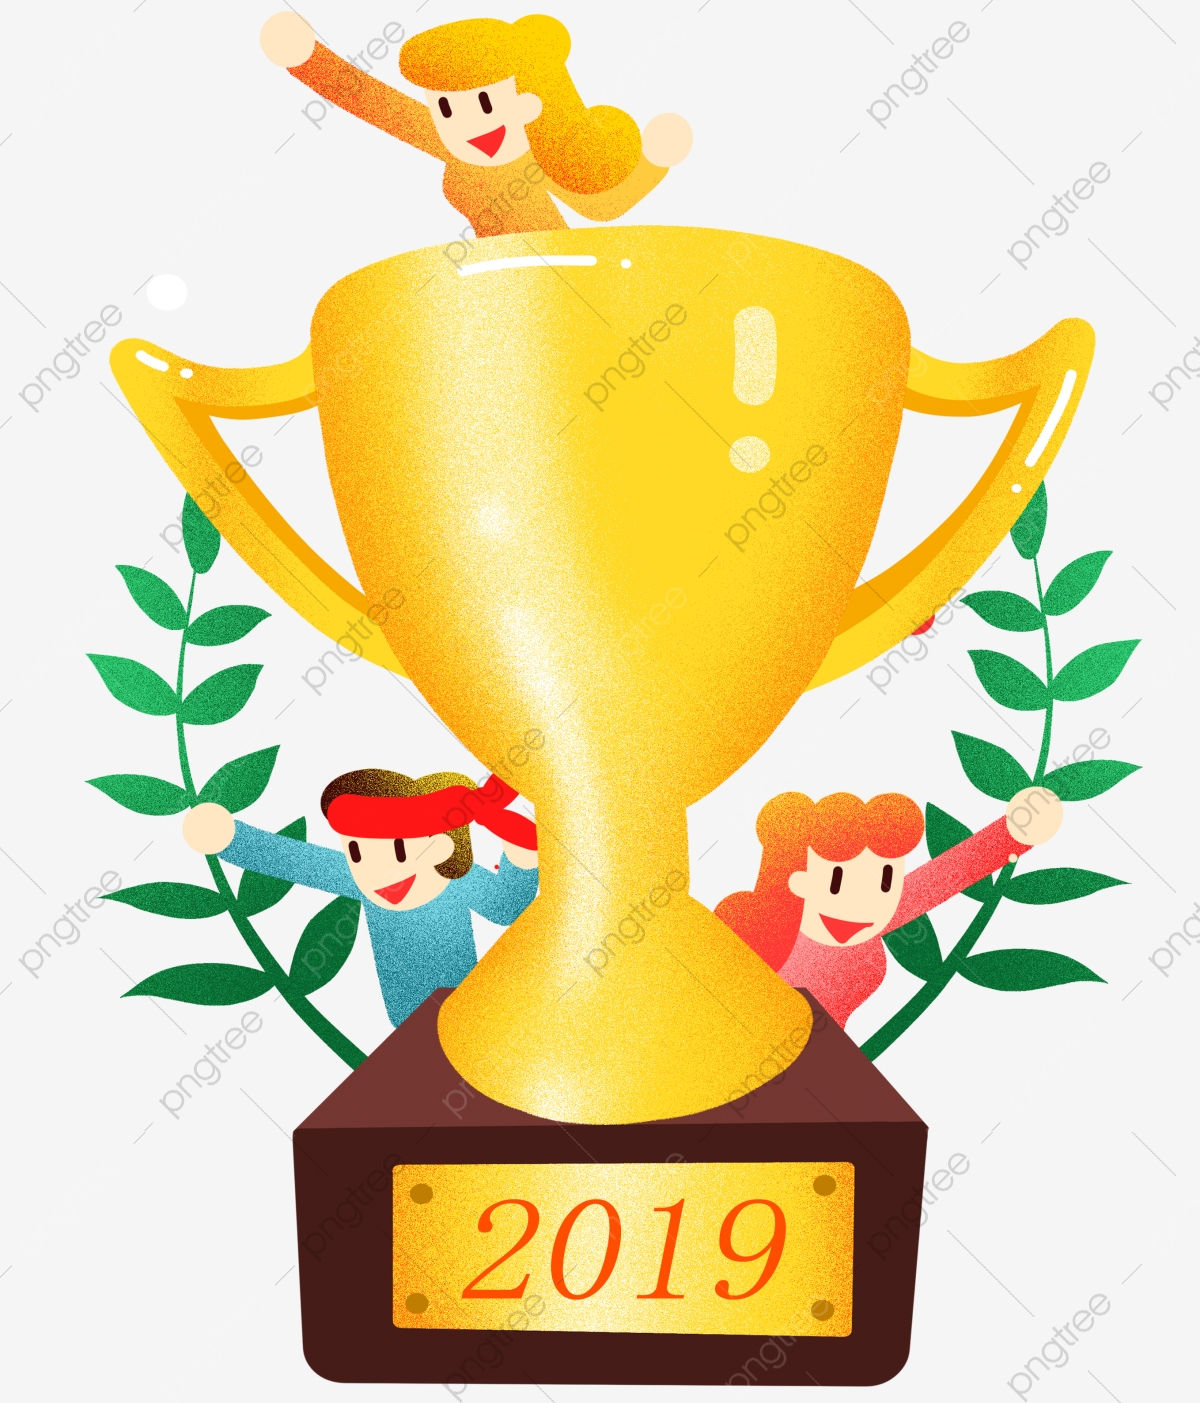 New years eve golden. Celebrate clipart award